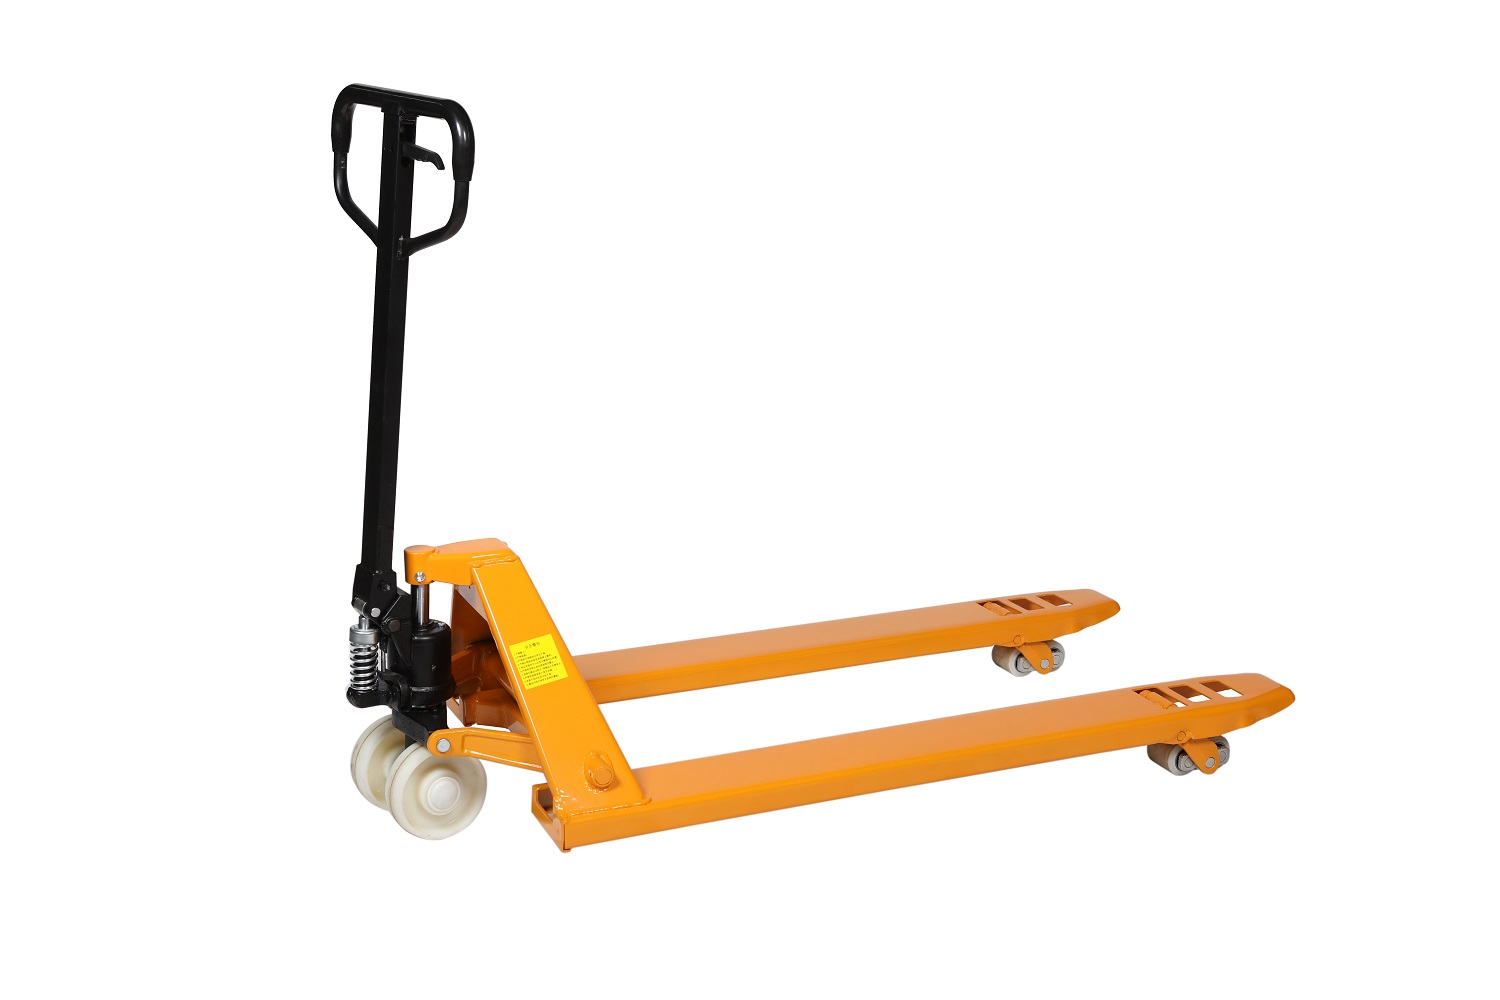 Hight Quality 180x50mm PU Wheels Hydraulic Pallet Truck PU Wheels